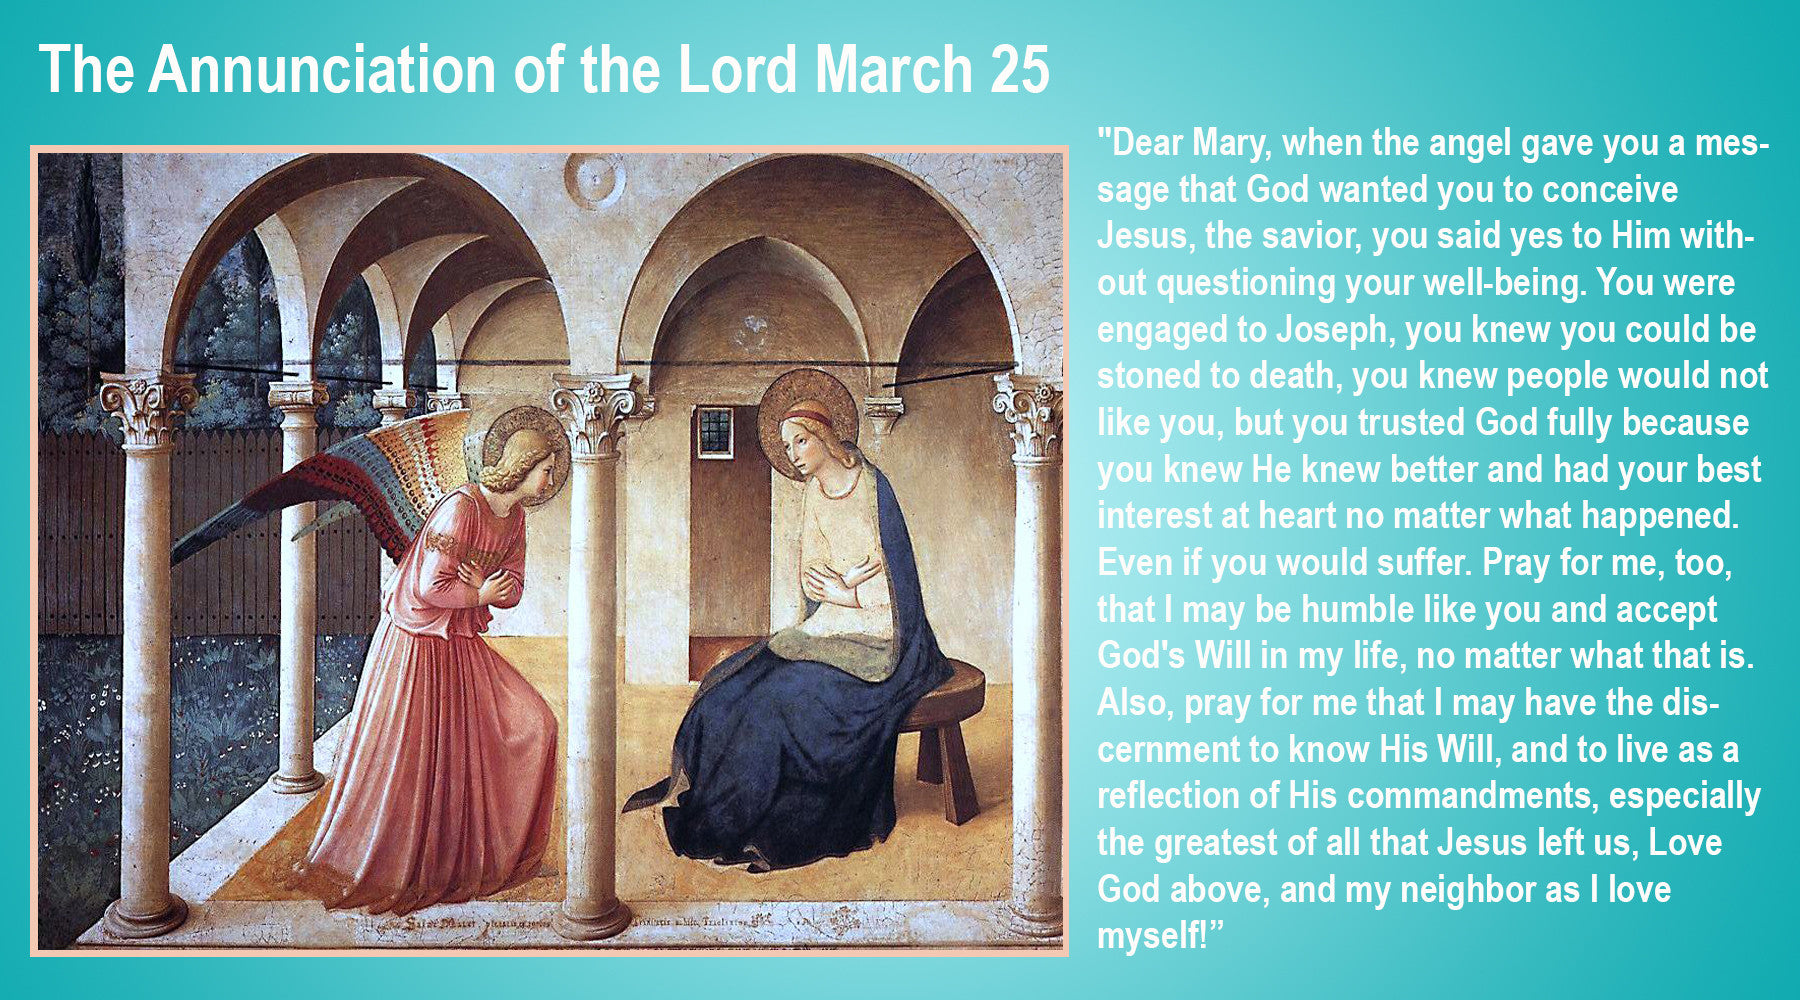 The Annunciation of the Lord March 25